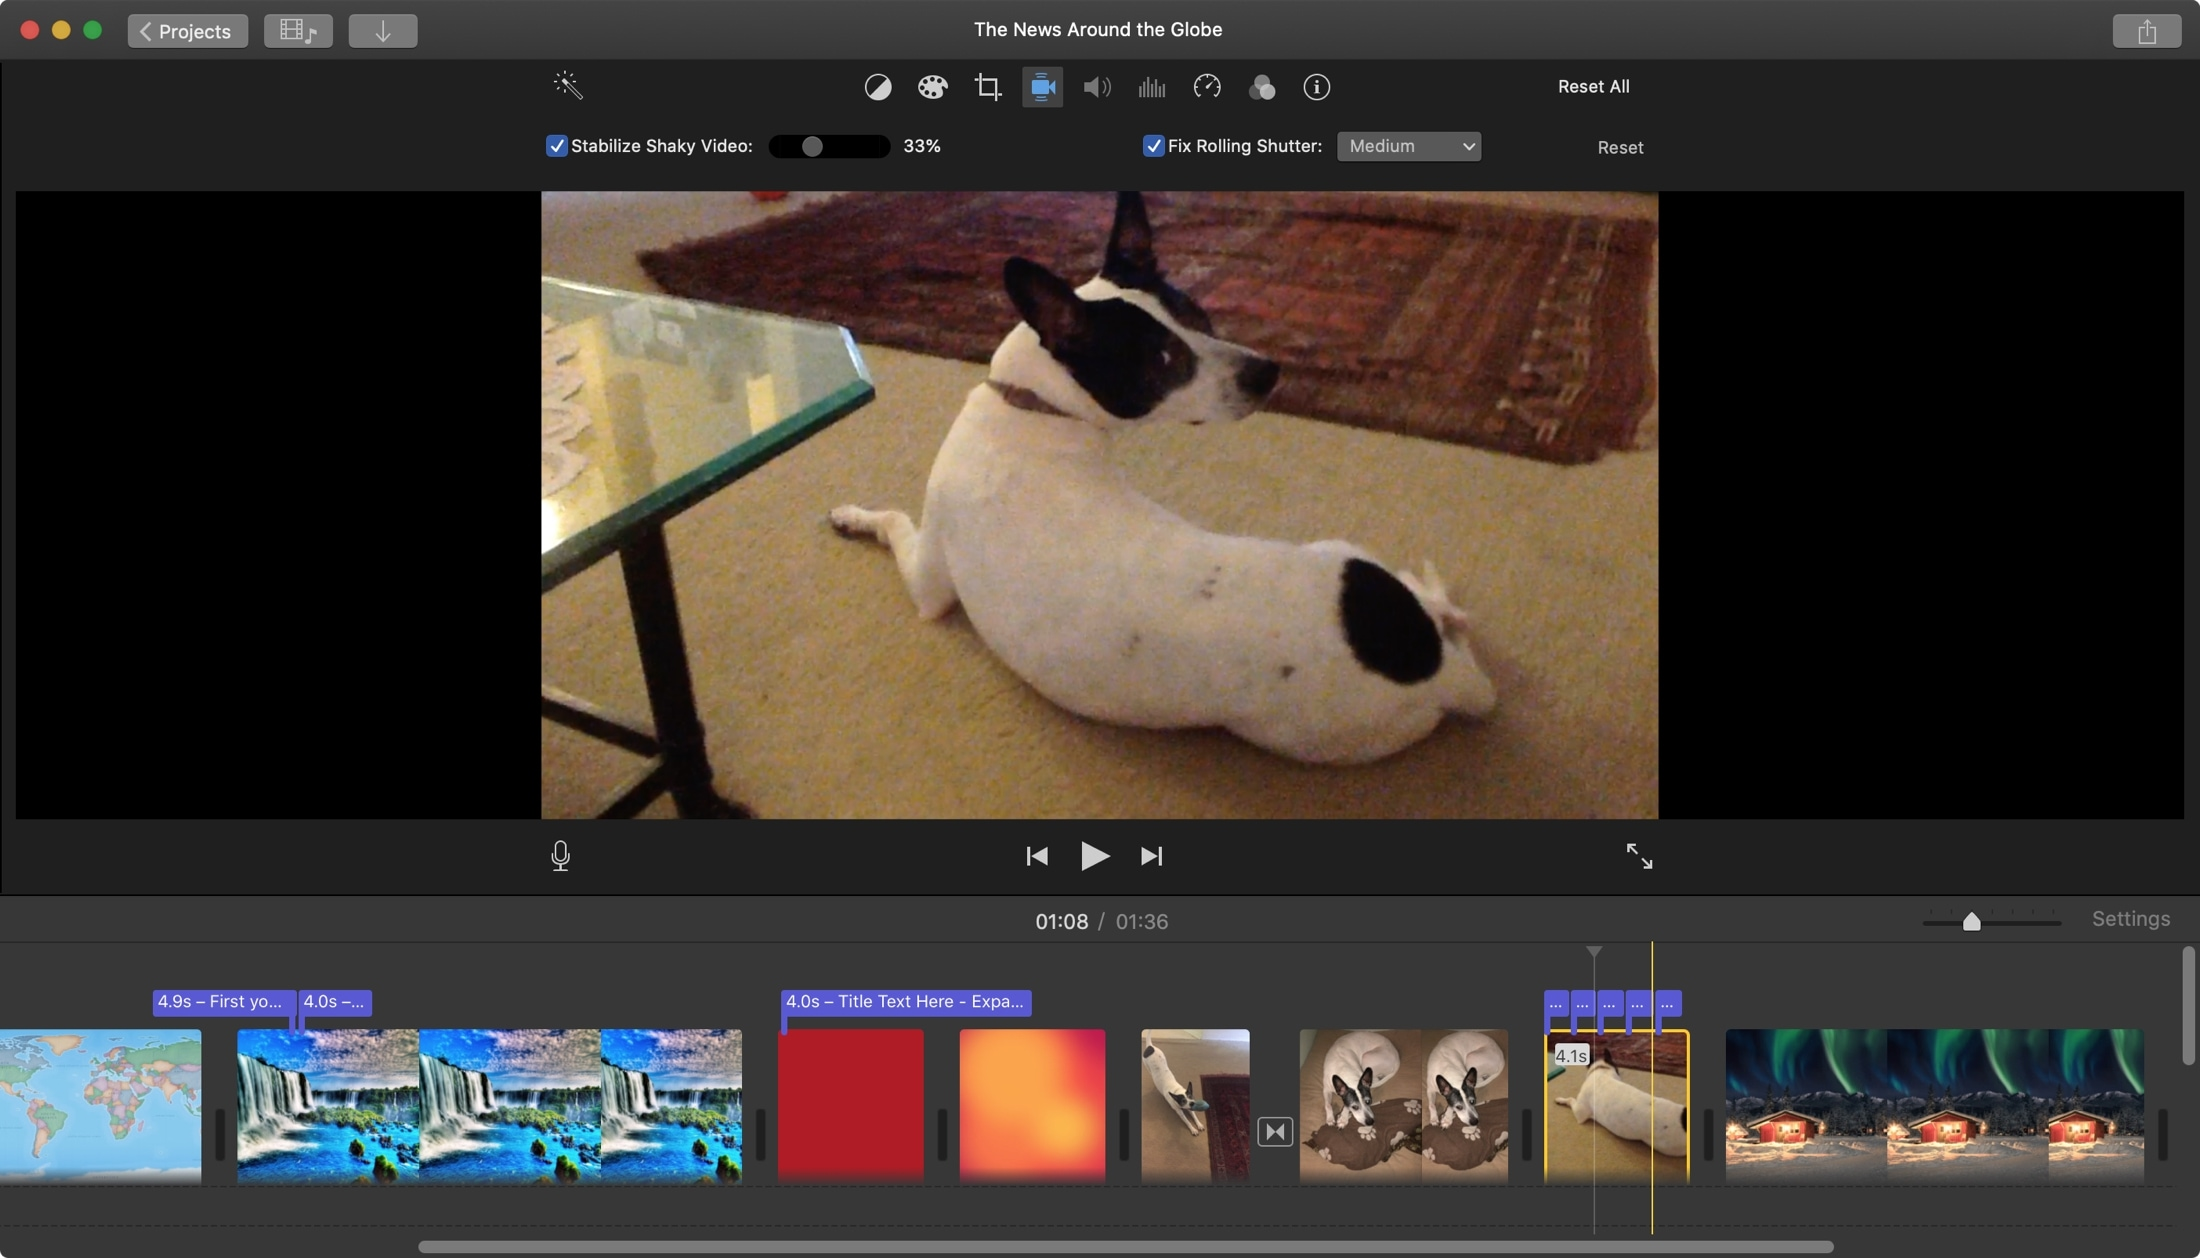 How to fix shaky video and rolling shutter in iMovie on Mac